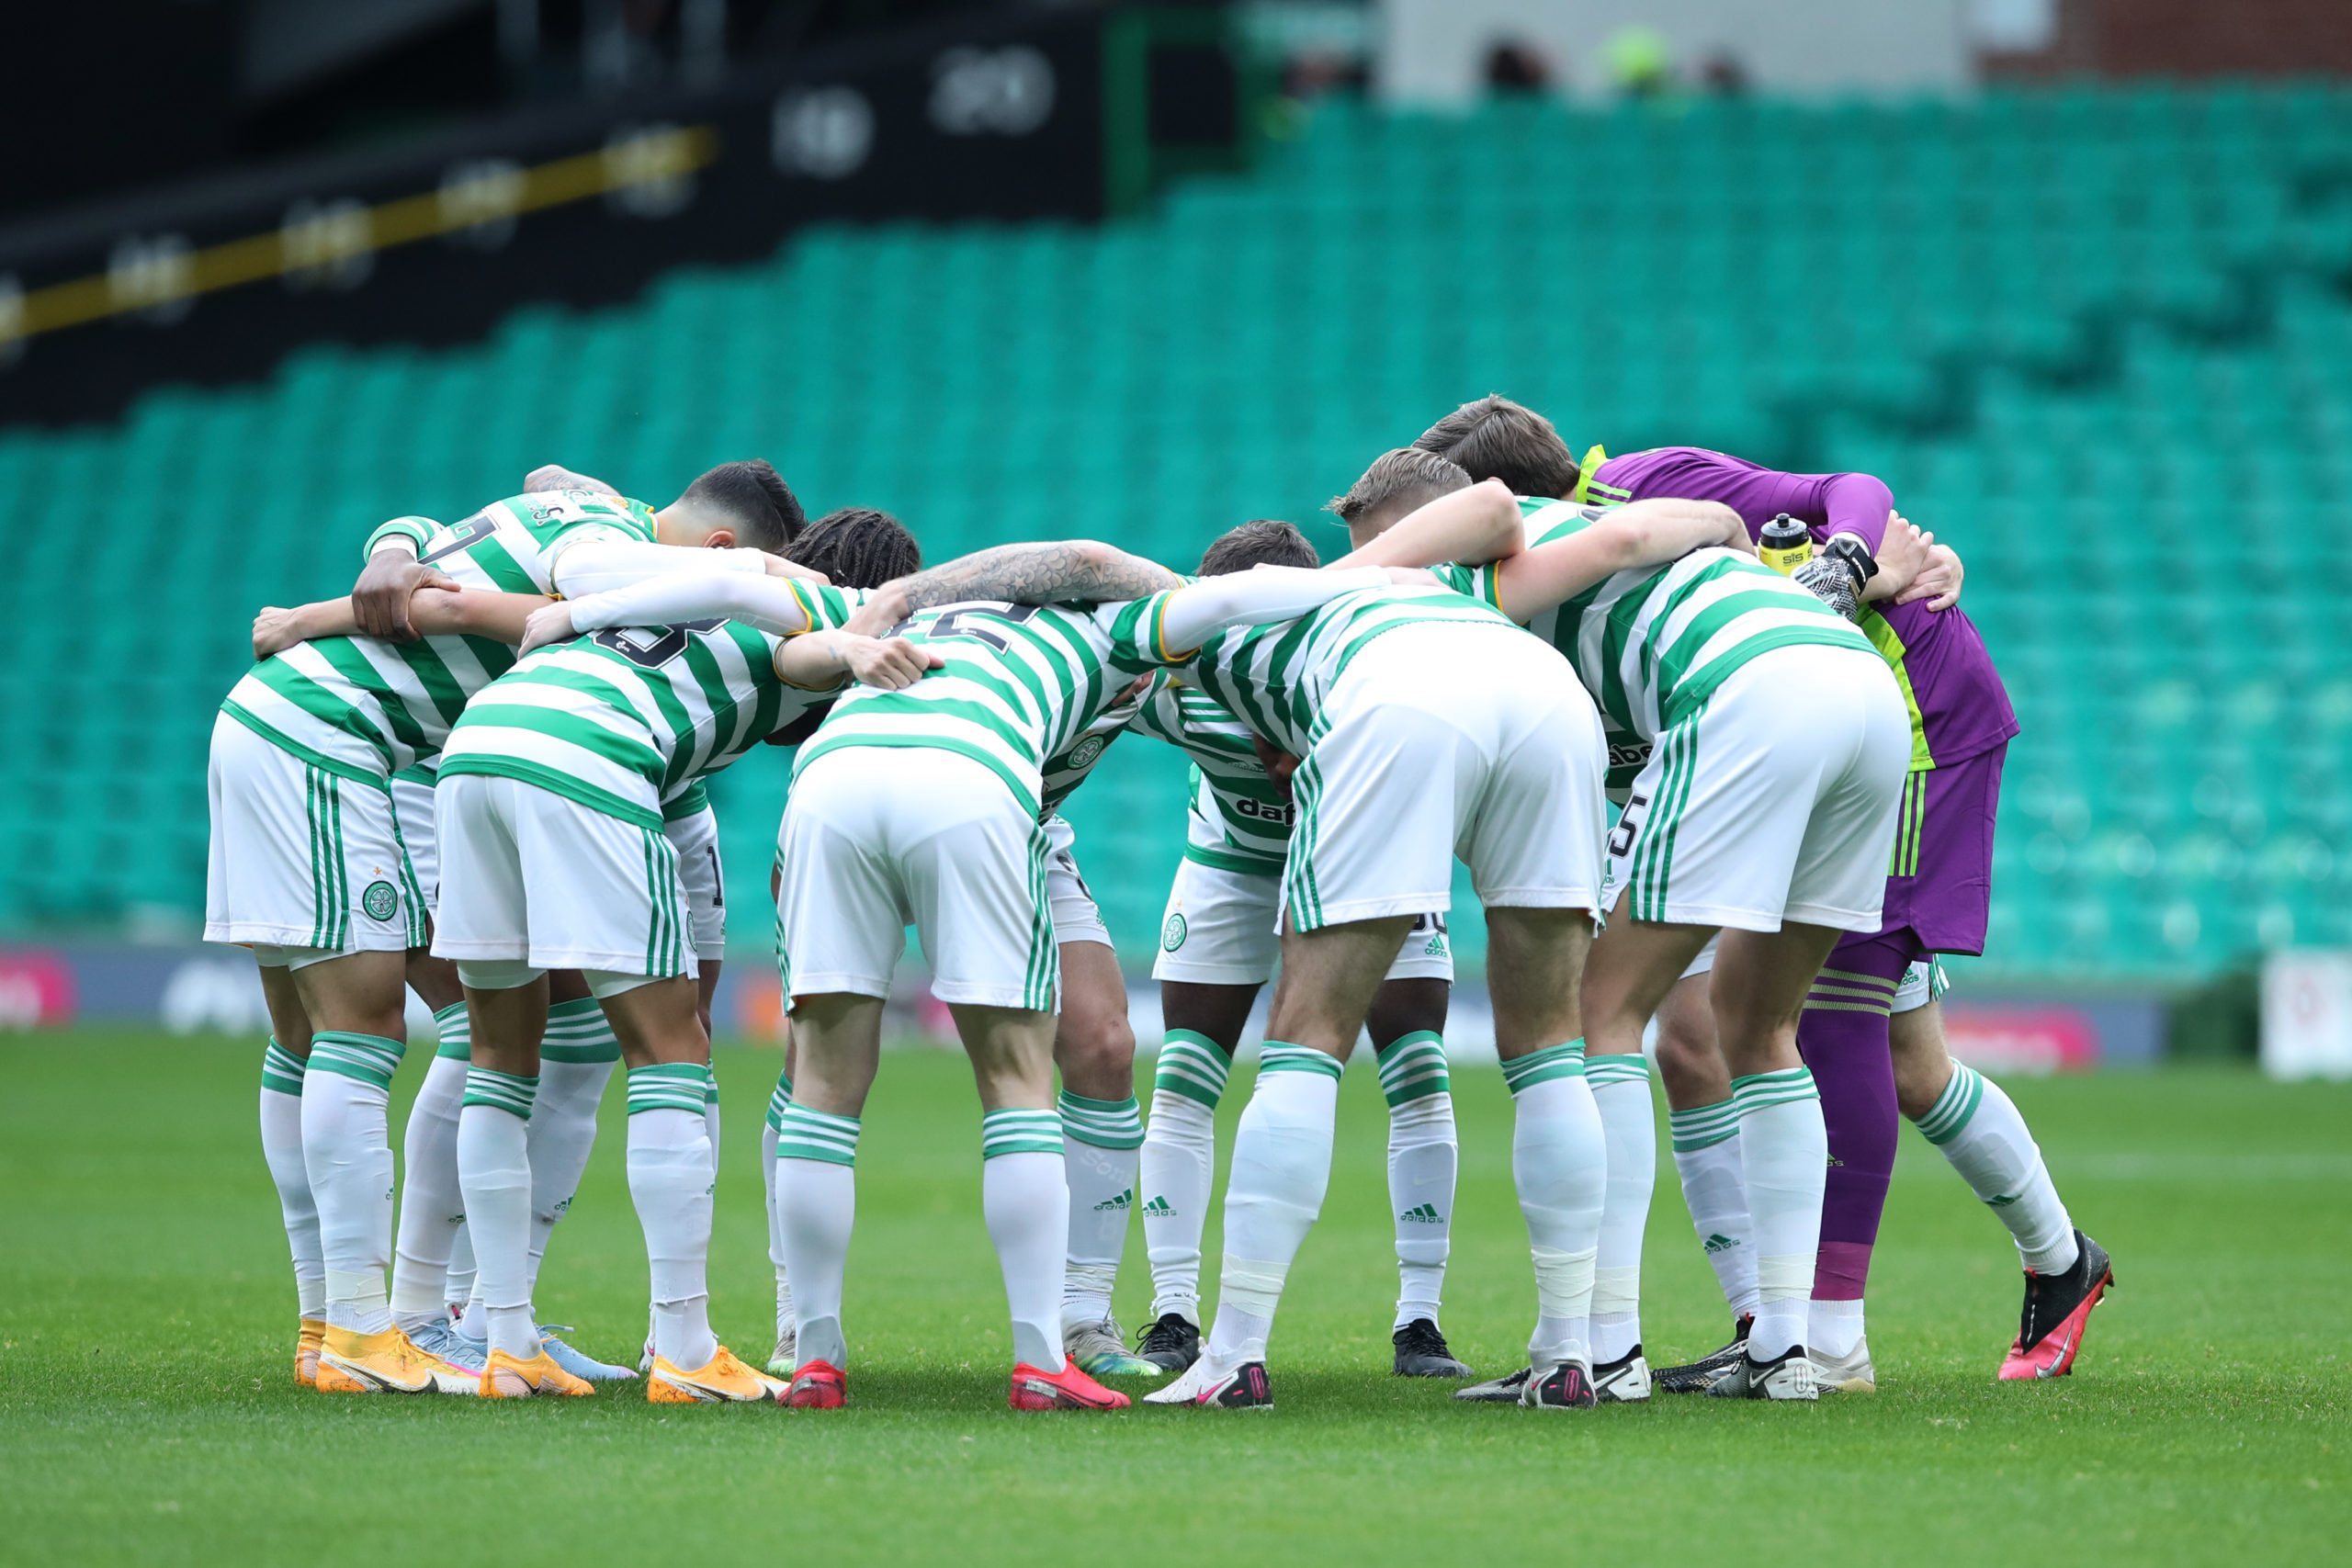 Celtic before the match against Rangers